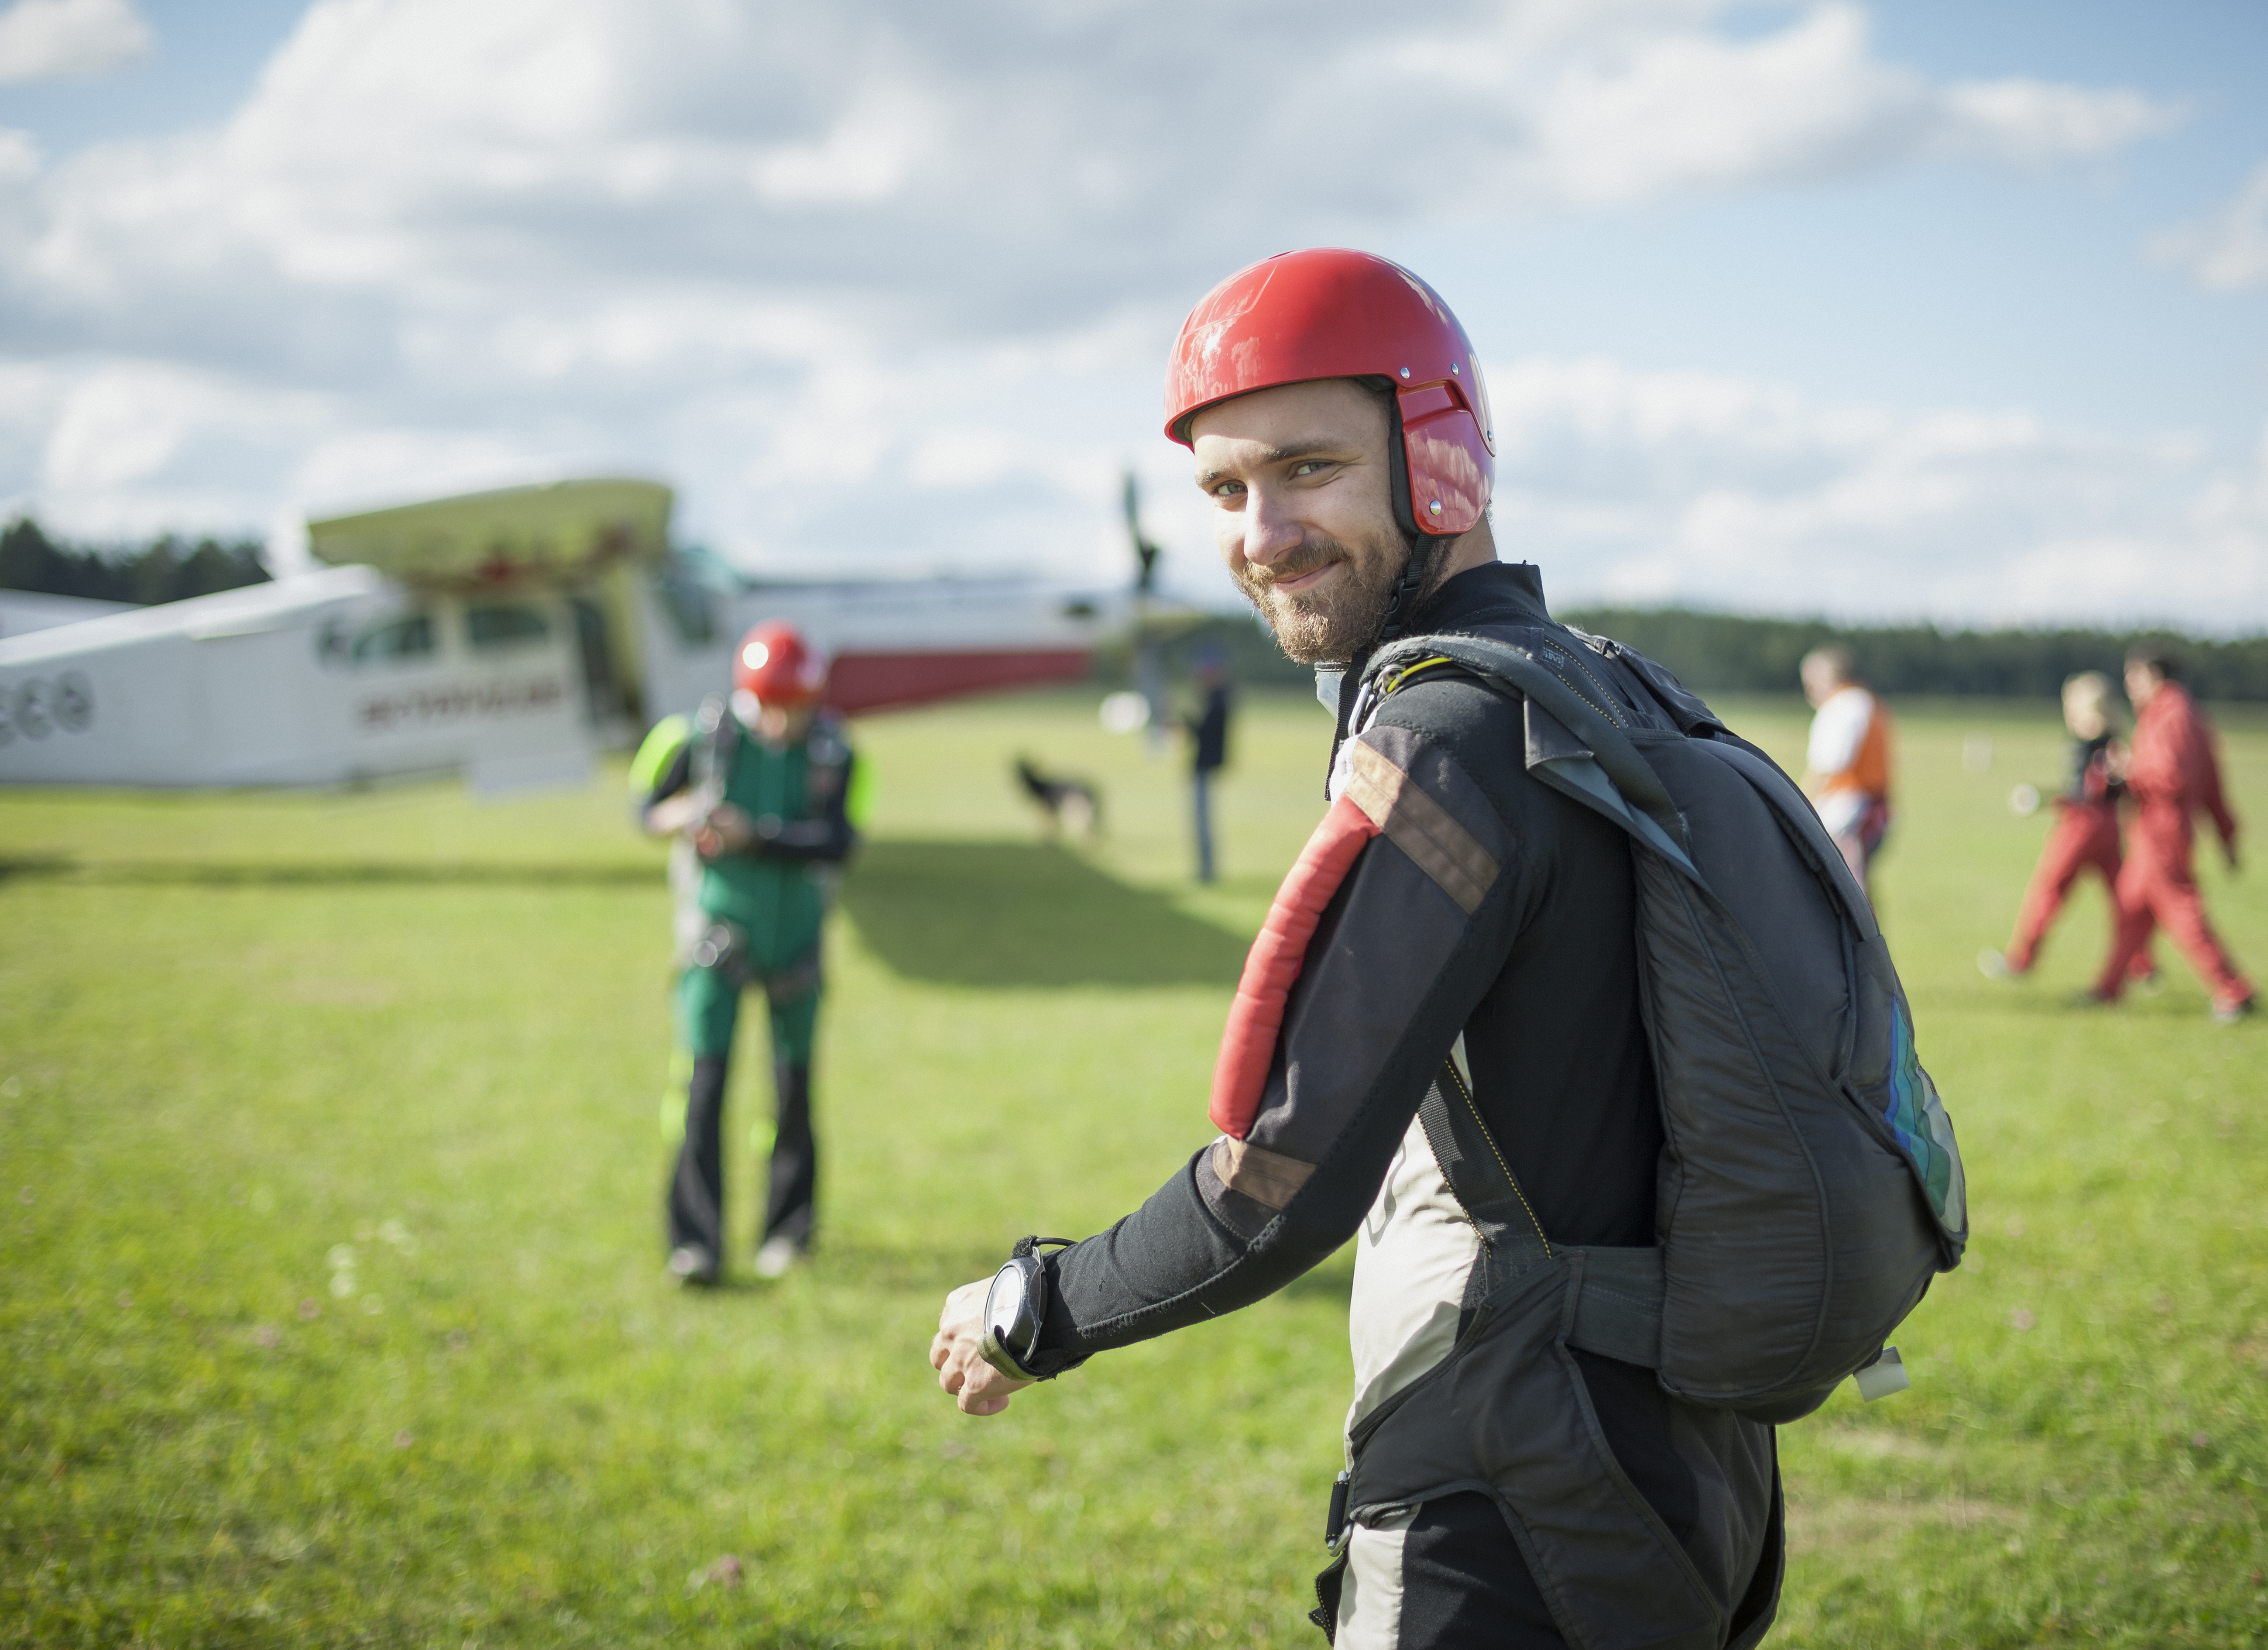 10 km without a parachute: what to do if you fell out of an airplane